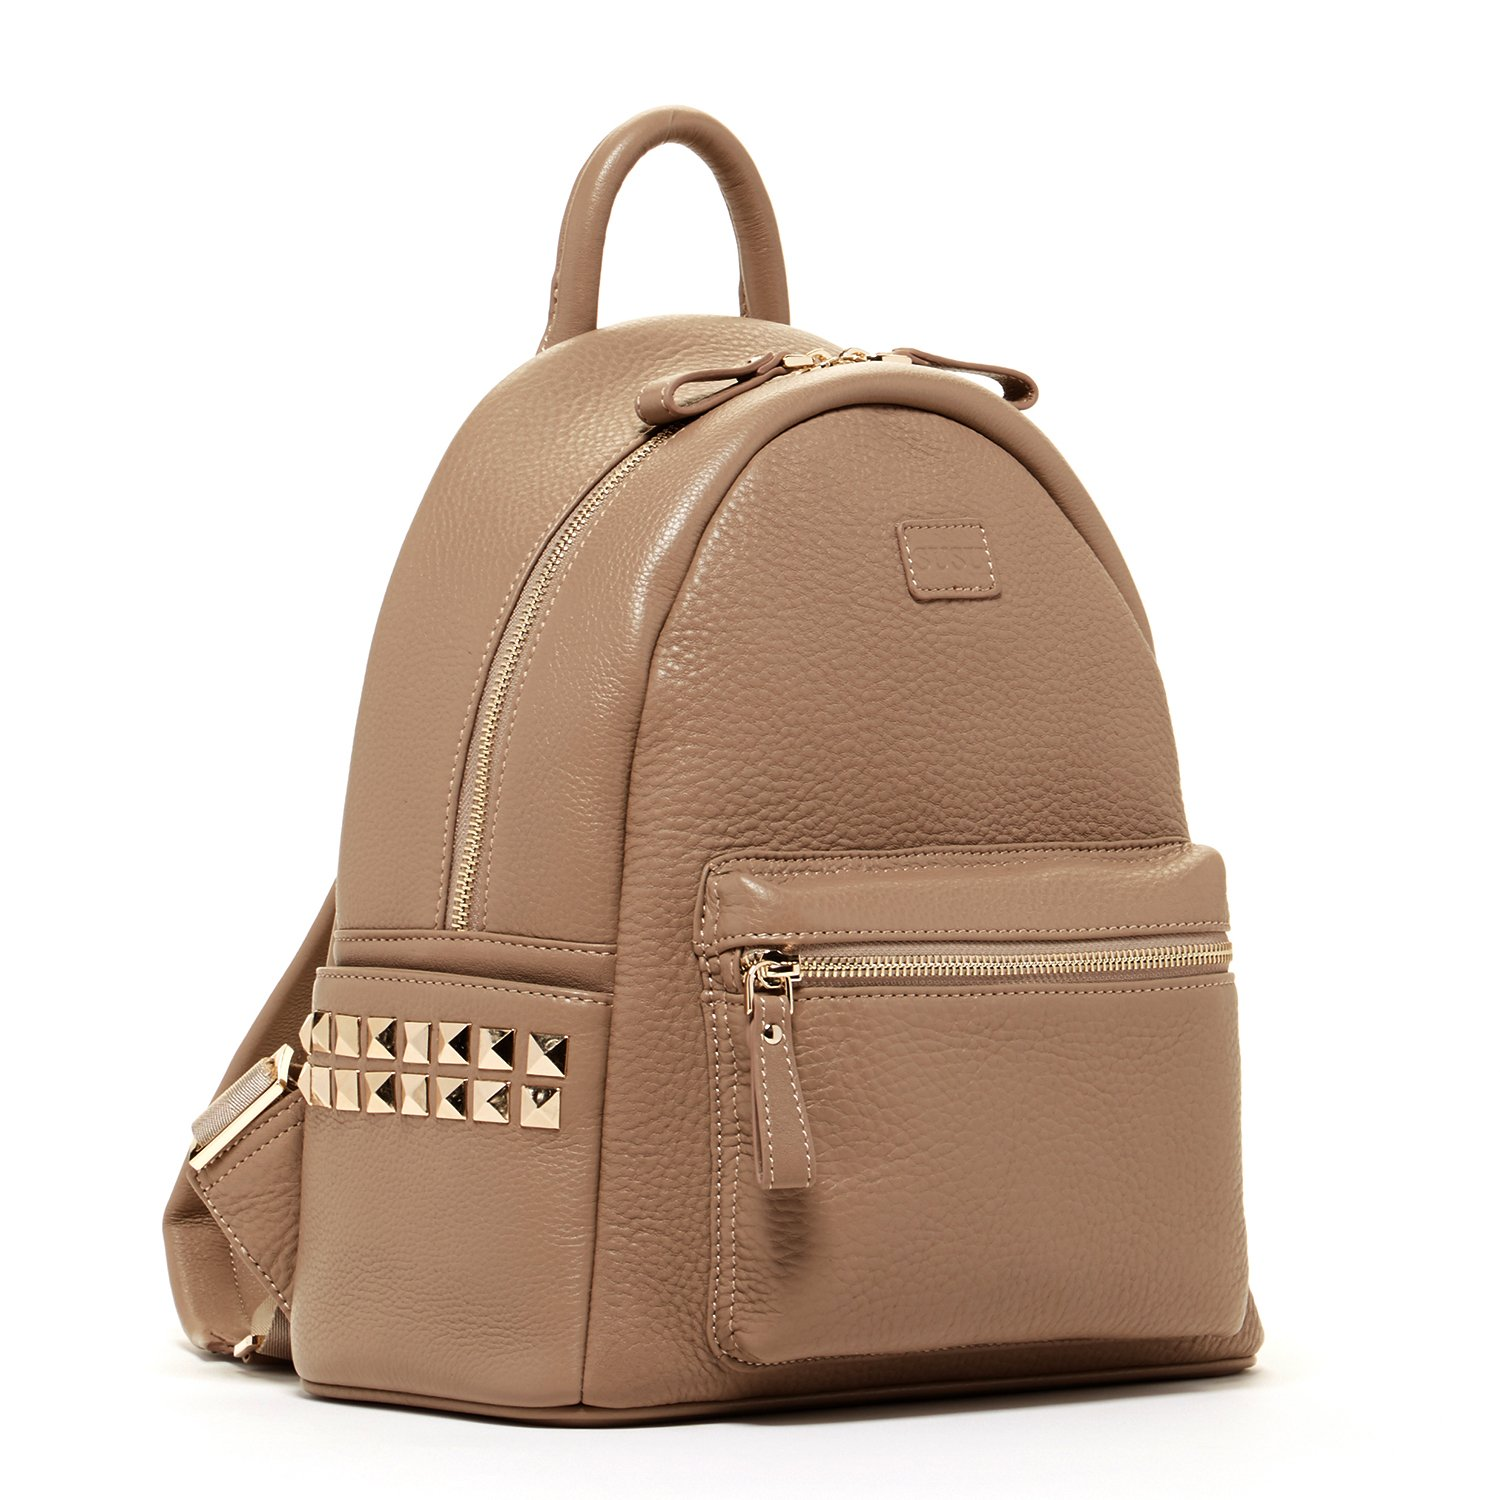 SUSU Cement studded Leather Backpack for Women With Studs Dark Beige Purse  for Women Side Pockets and Zipper Front Pocket Leather Backpack Style Purse  Tan ... 6dffe0807968b